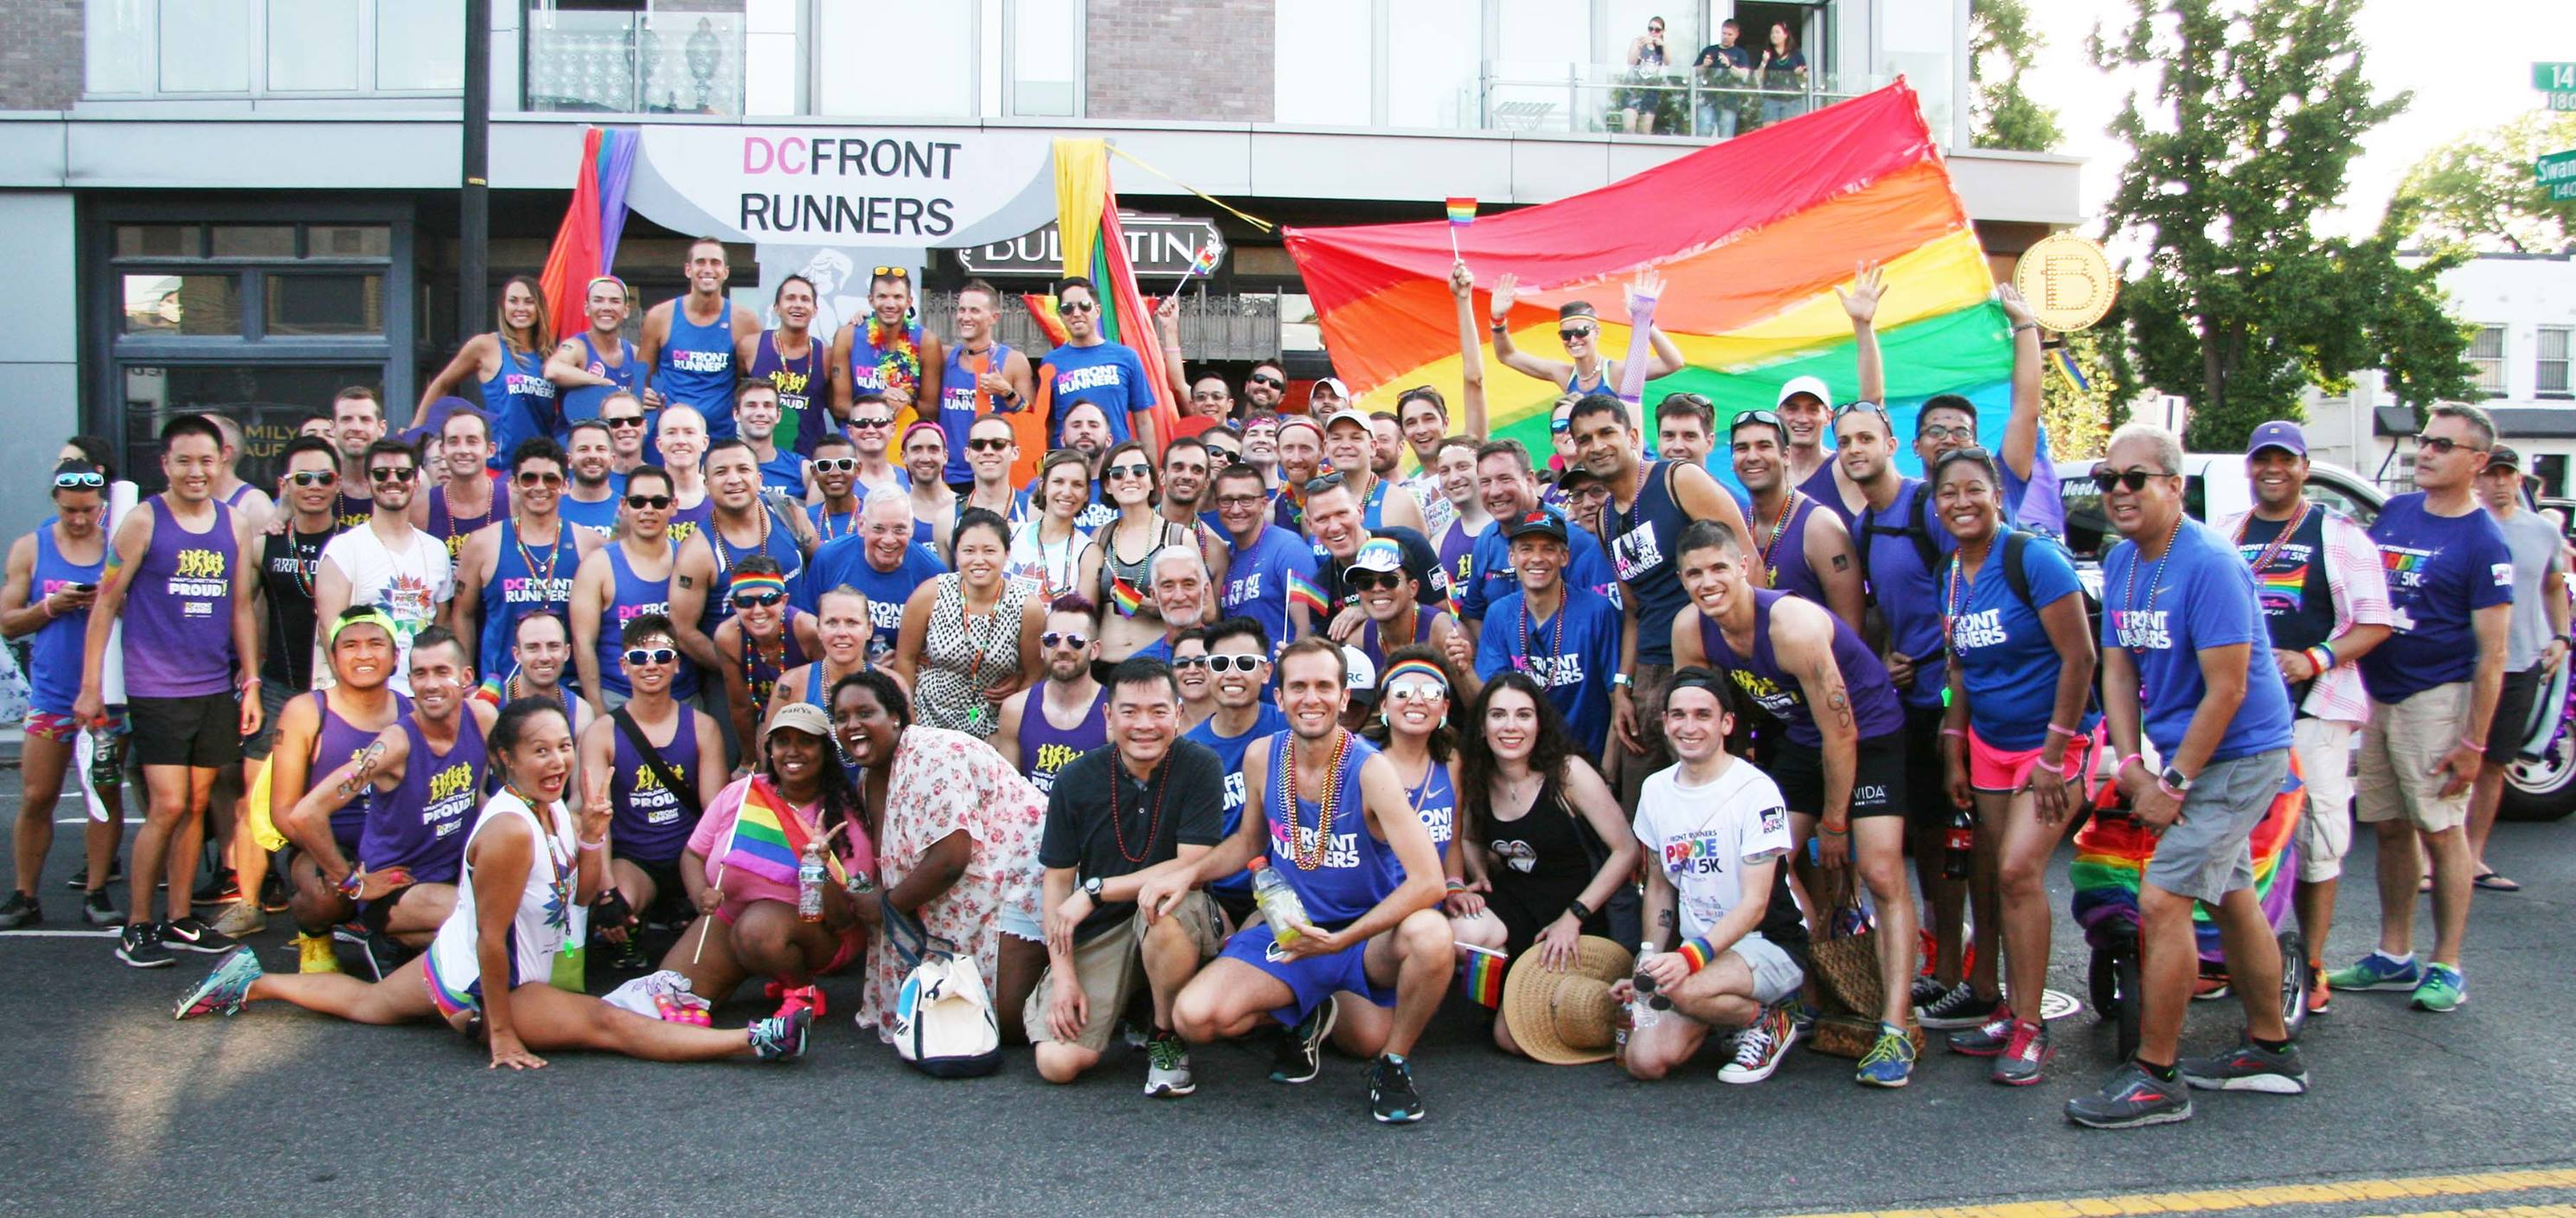 Dc front runners gay marriage